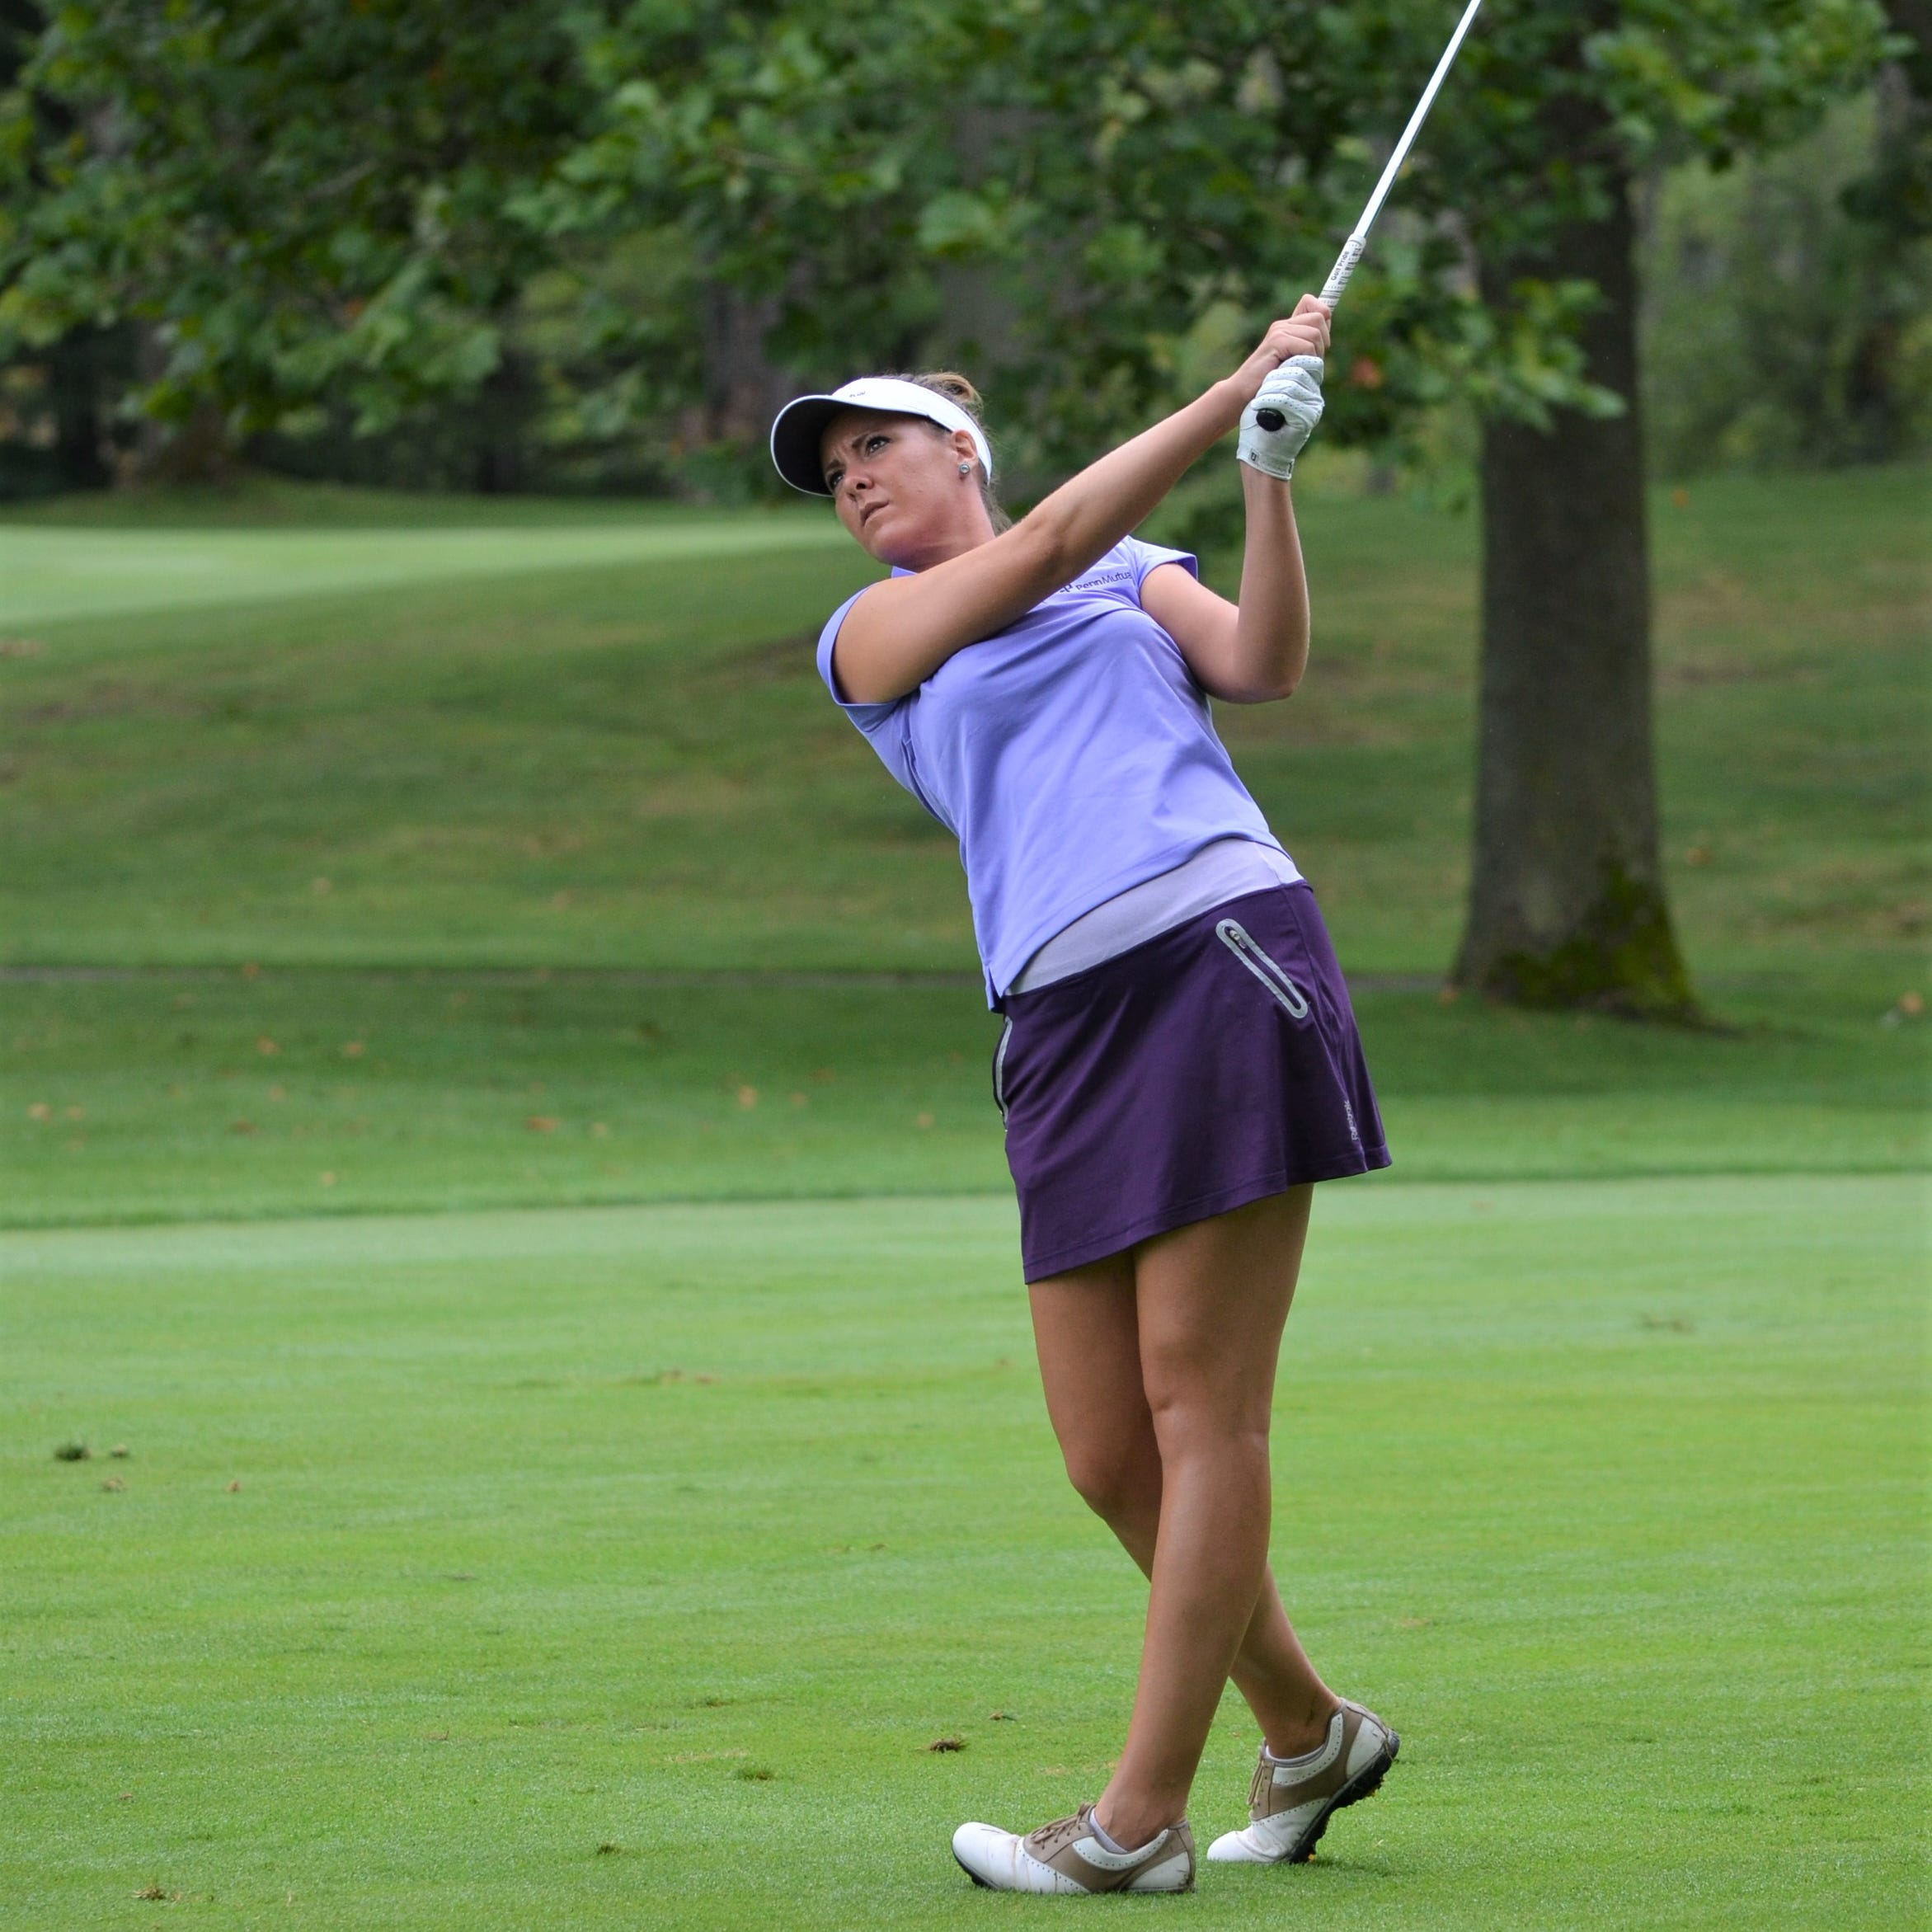 Former Michigan State golfers enjoy return to area to play at Symetra's FireKeepers event